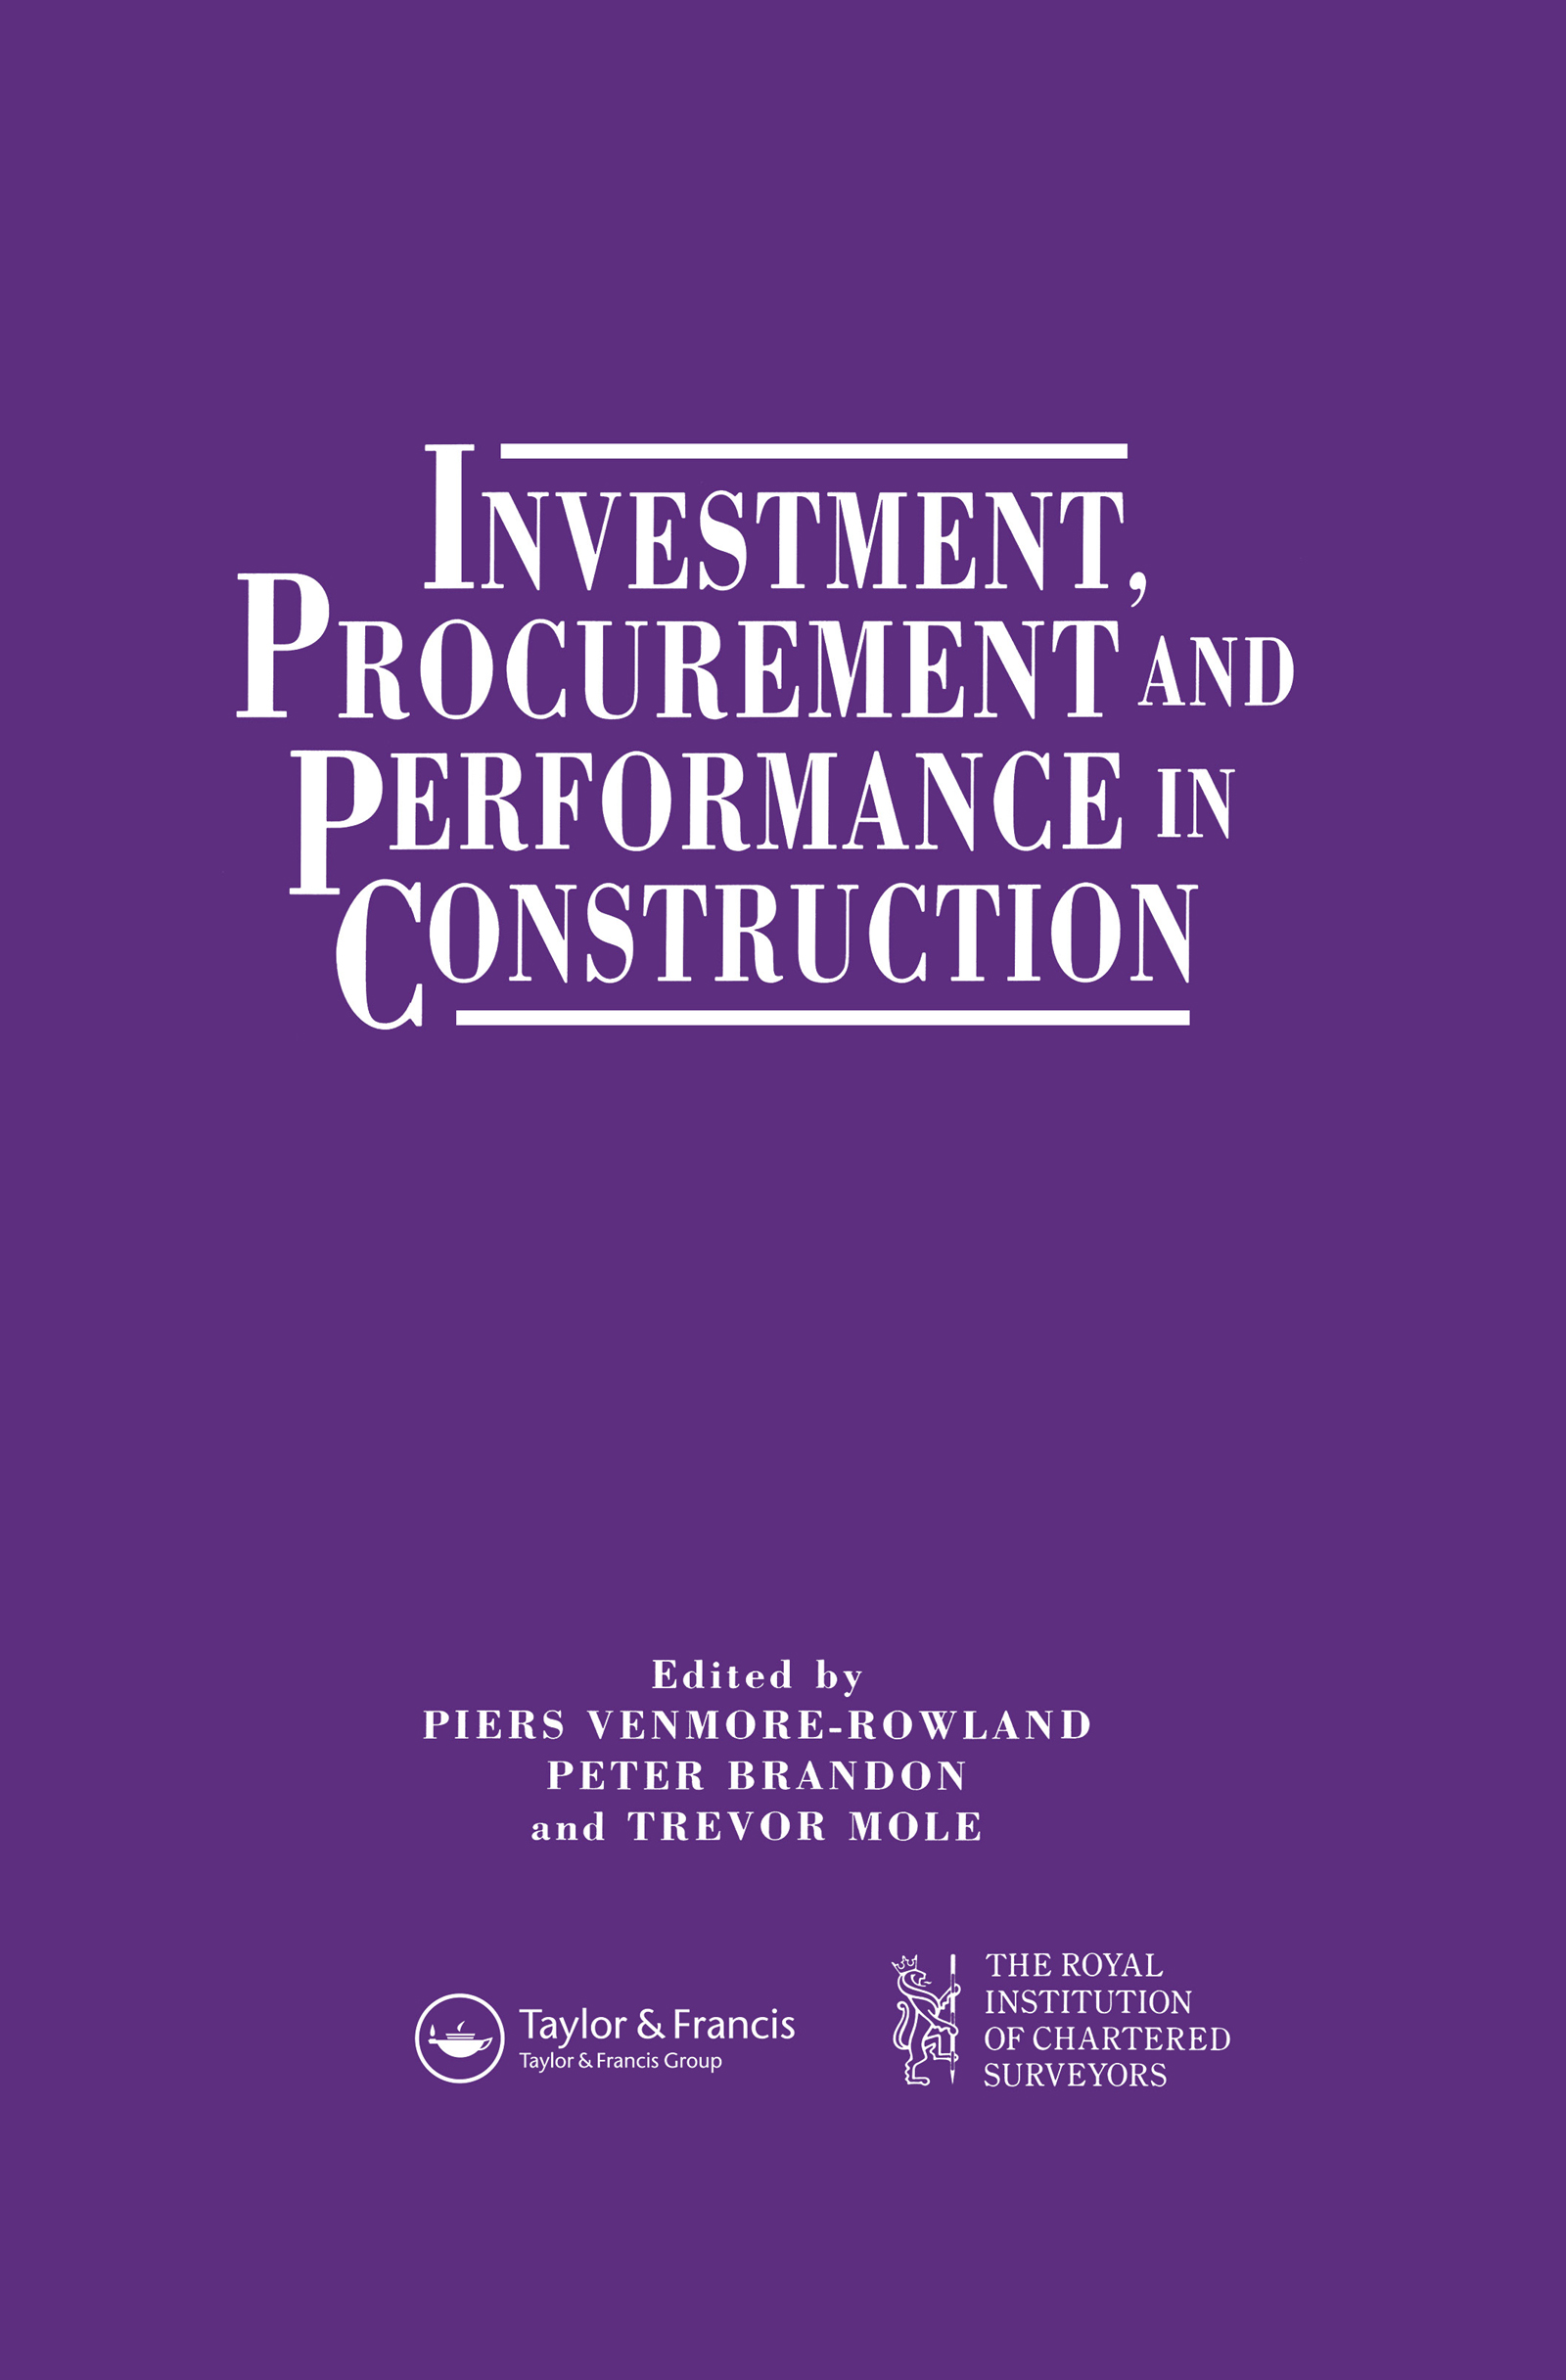 Investment, Procurement and Performance in Construction